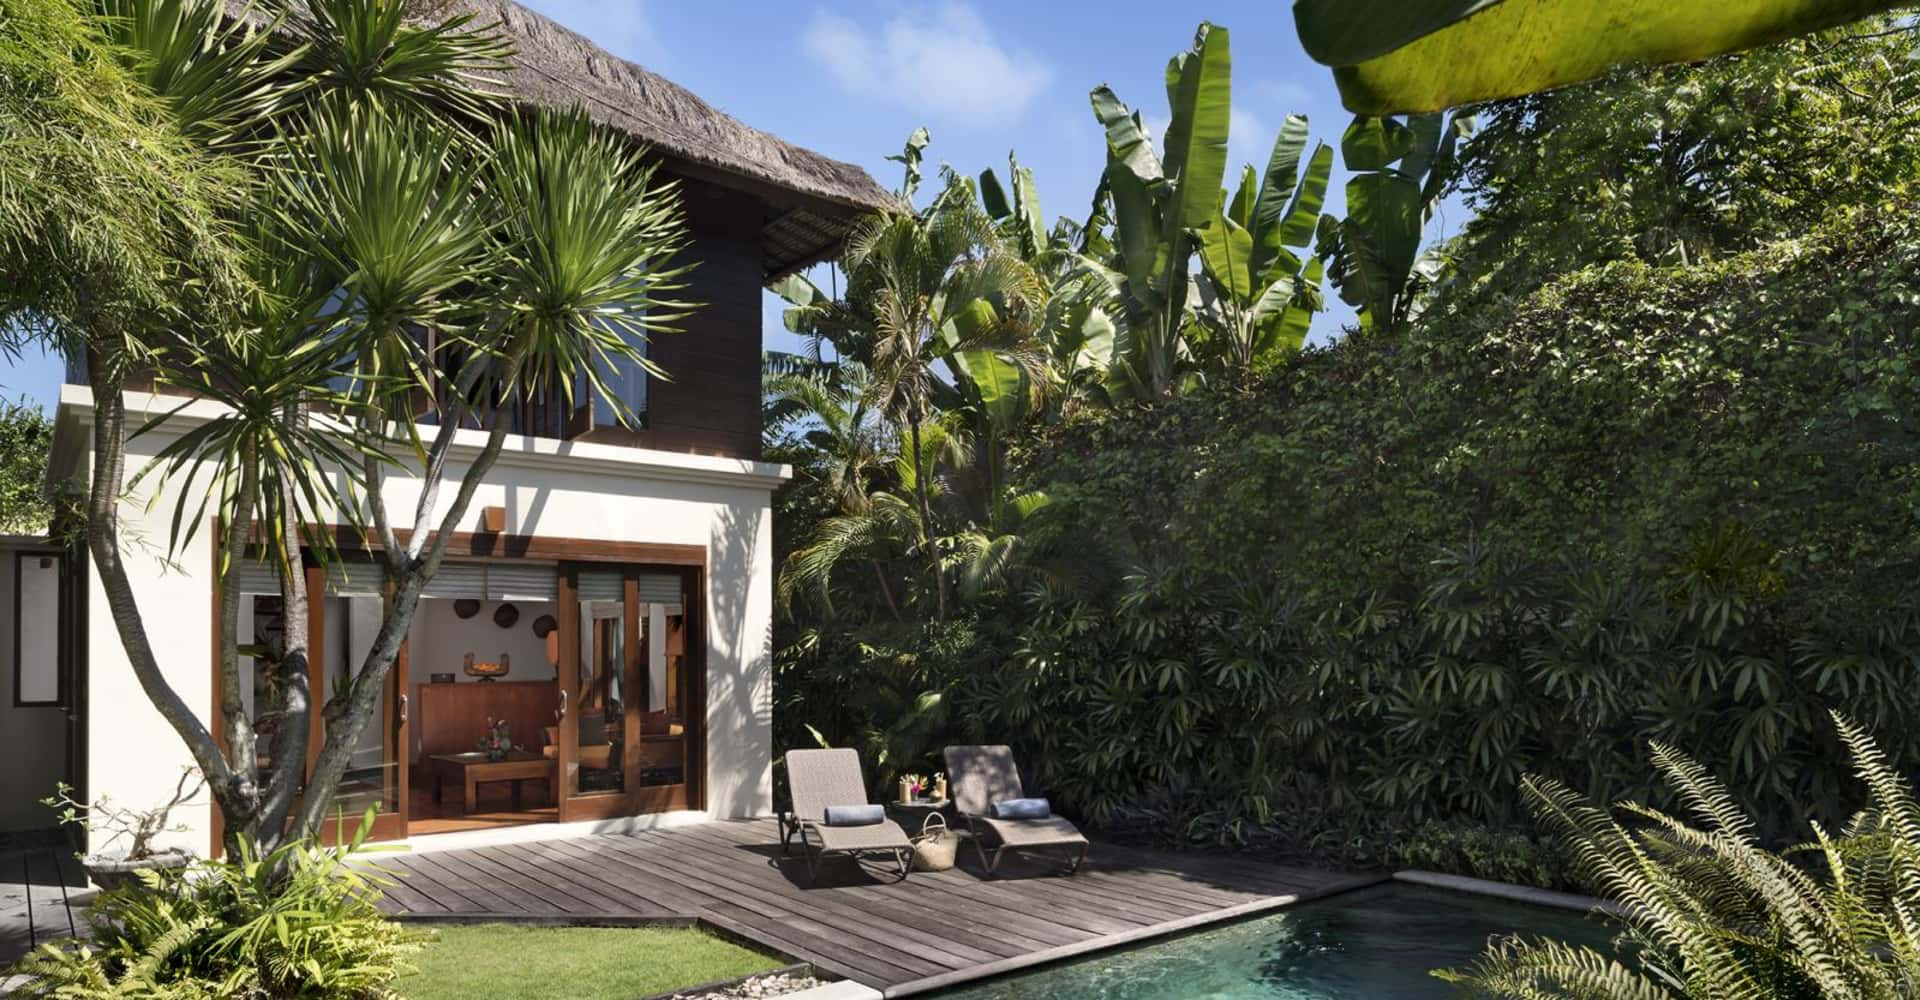 Honeymoon - The Pavilions Bali